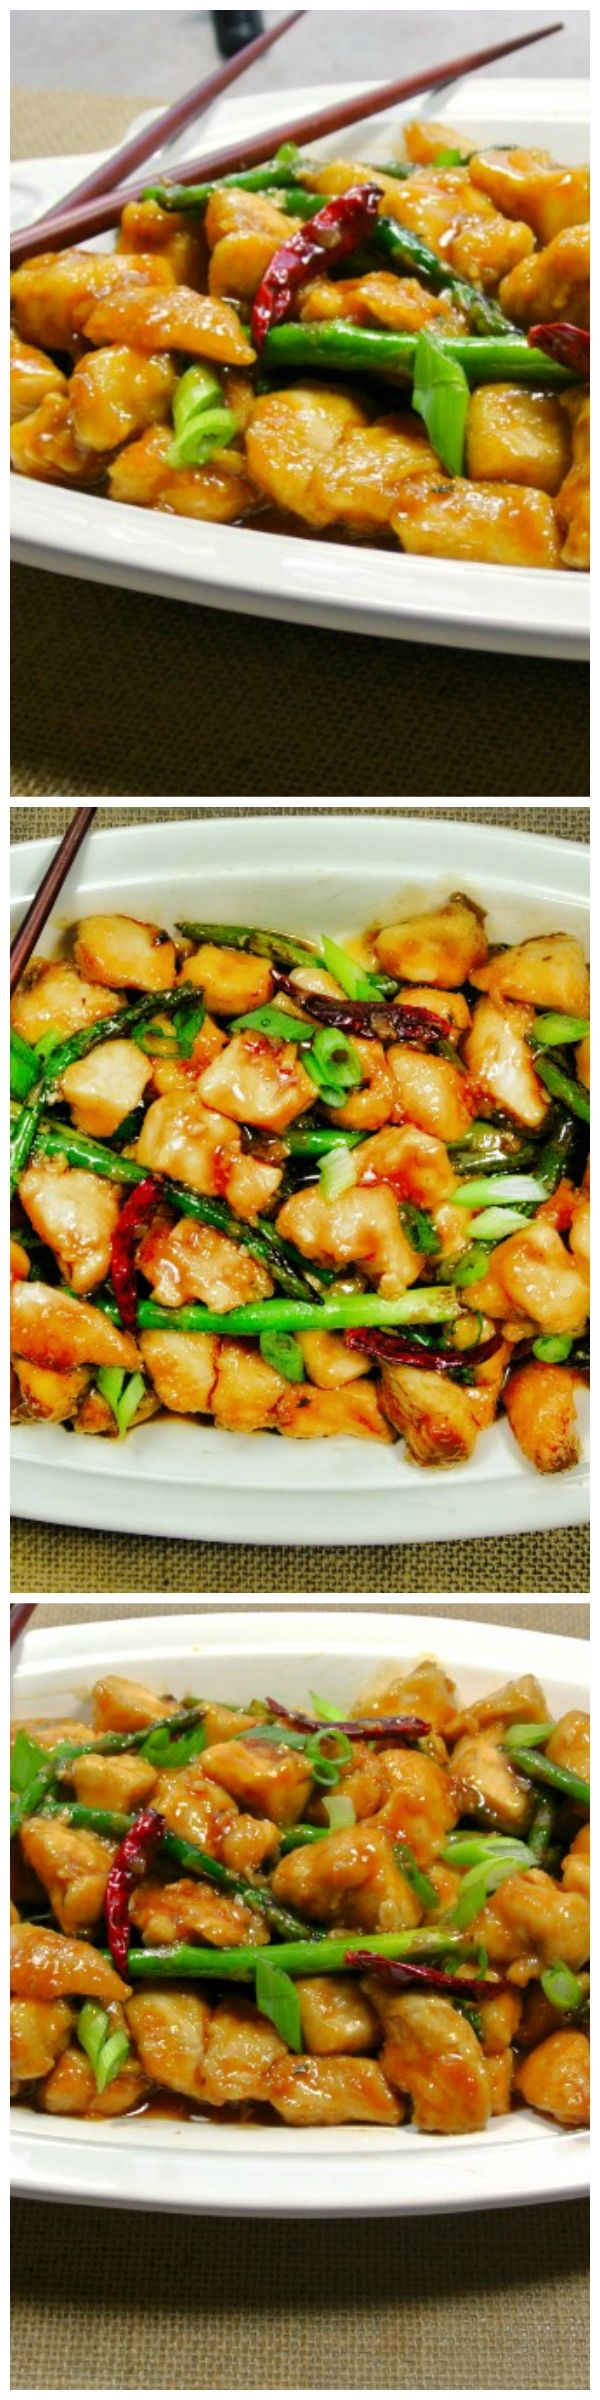 General Tso's Chicken banish yeah via whole yum:Try this easy low carb version of the family favorite General Tso's Chicken and you won't ever need to get take-out again. #Chicken #Stir_Fry #Generak_Tso  #Healthy